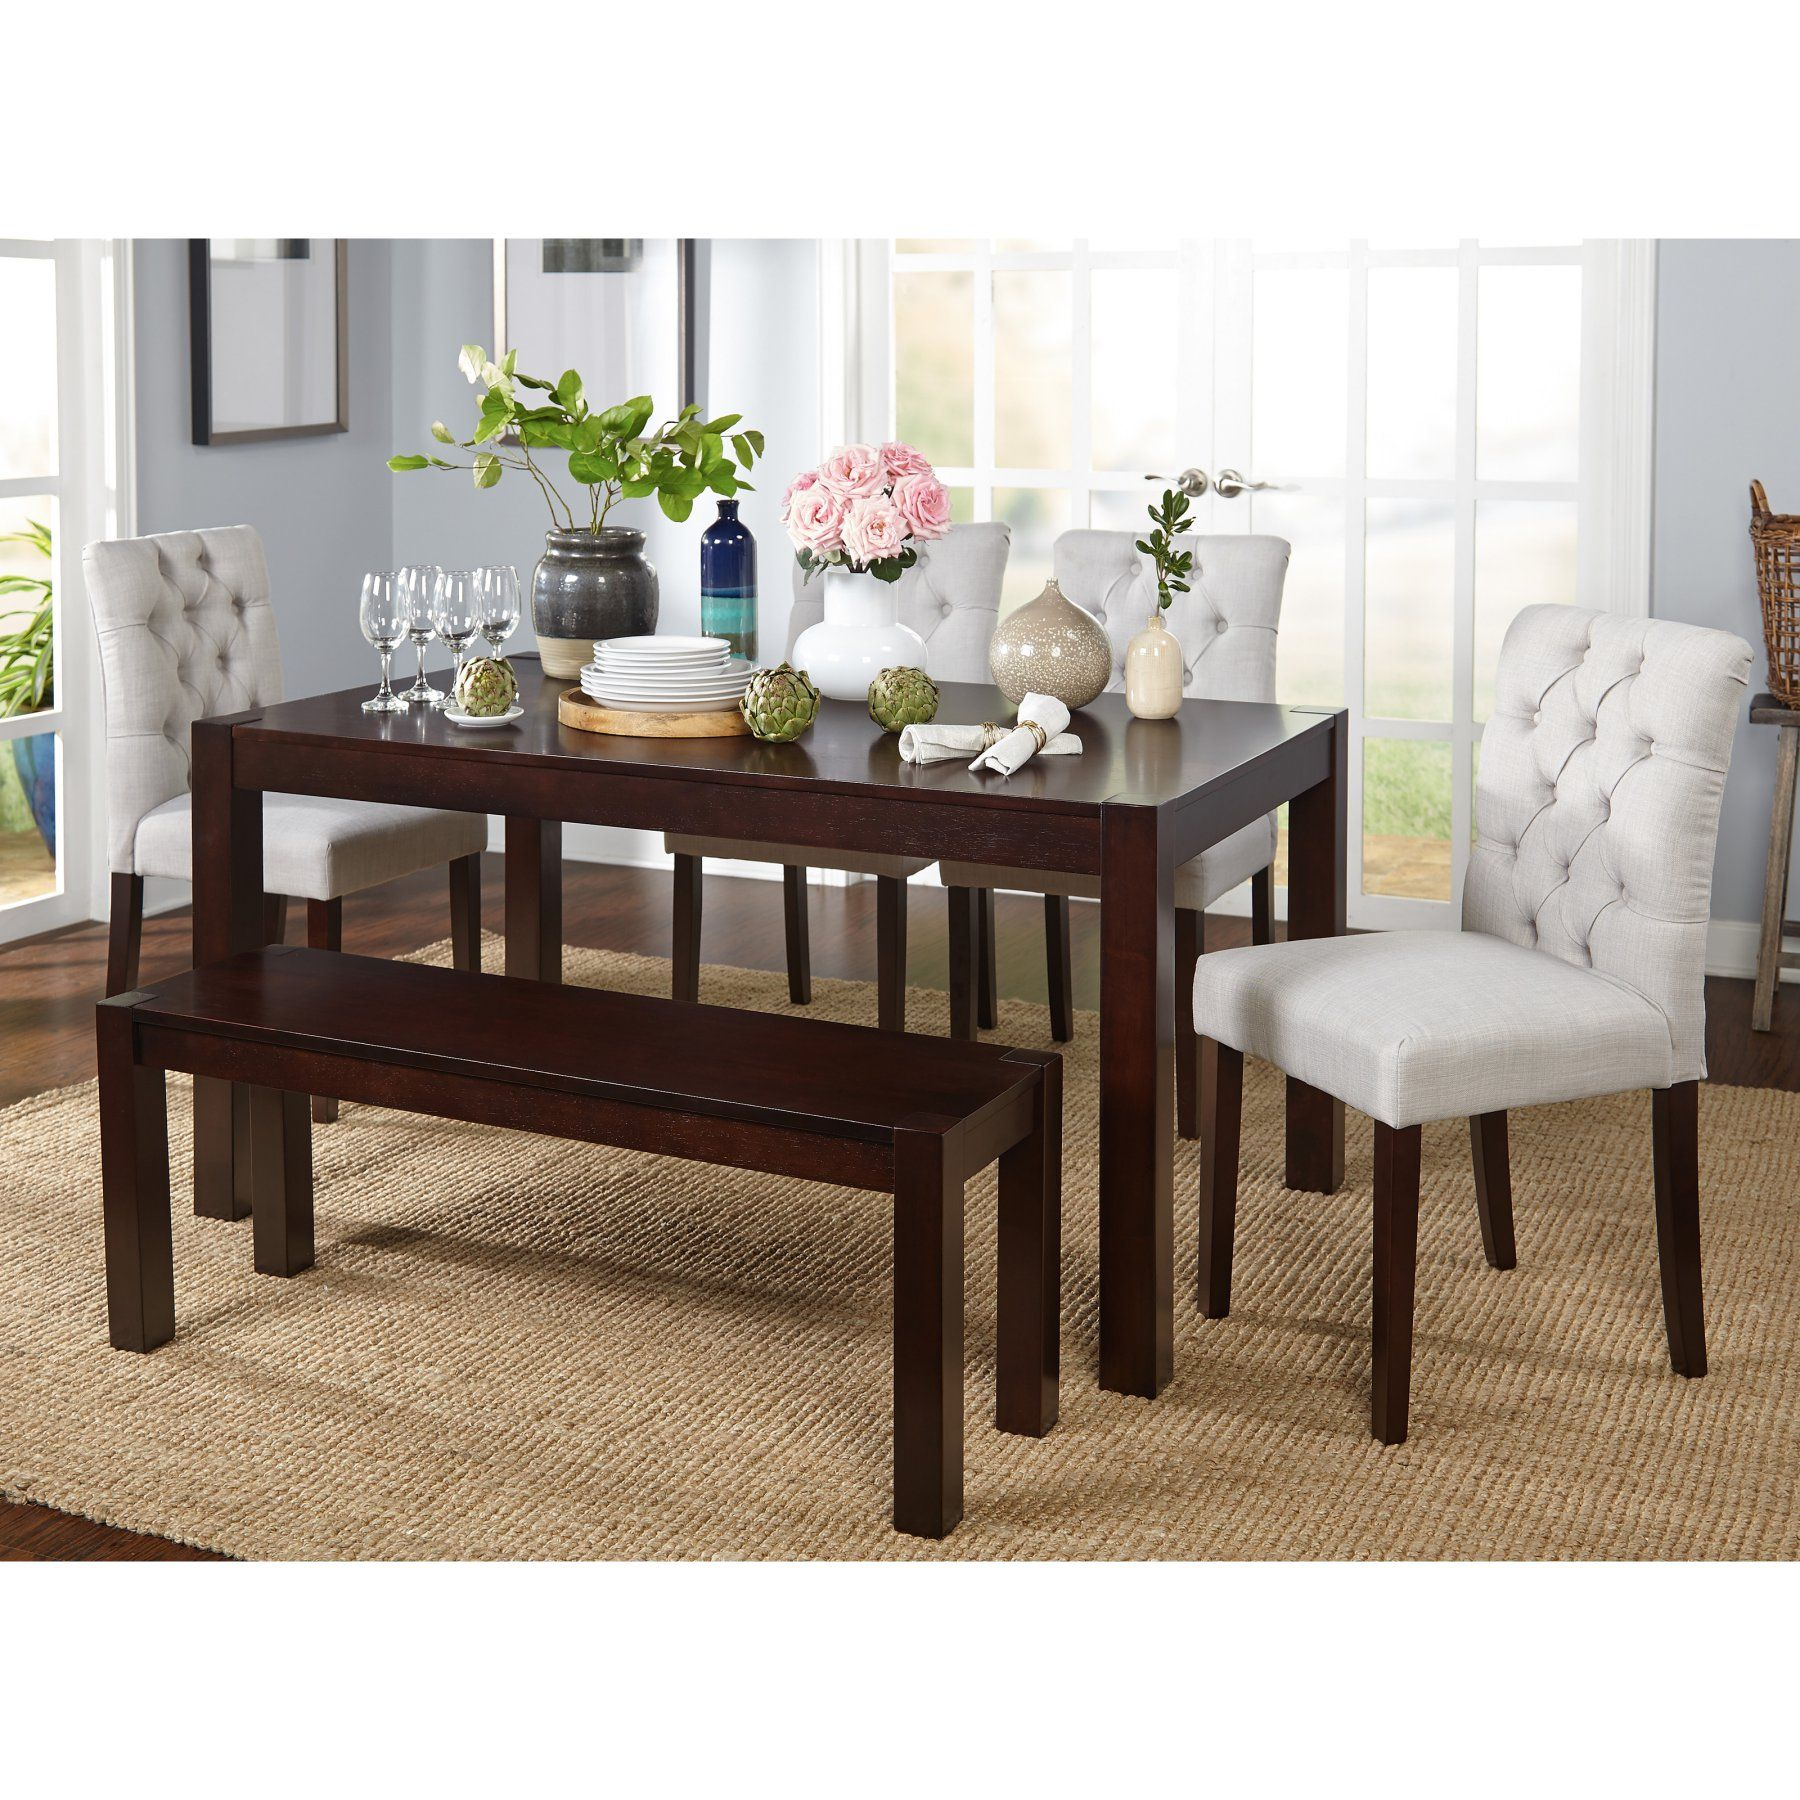 Target Marketing Systems Annie 6 Piece Dining Table Set 92016gry